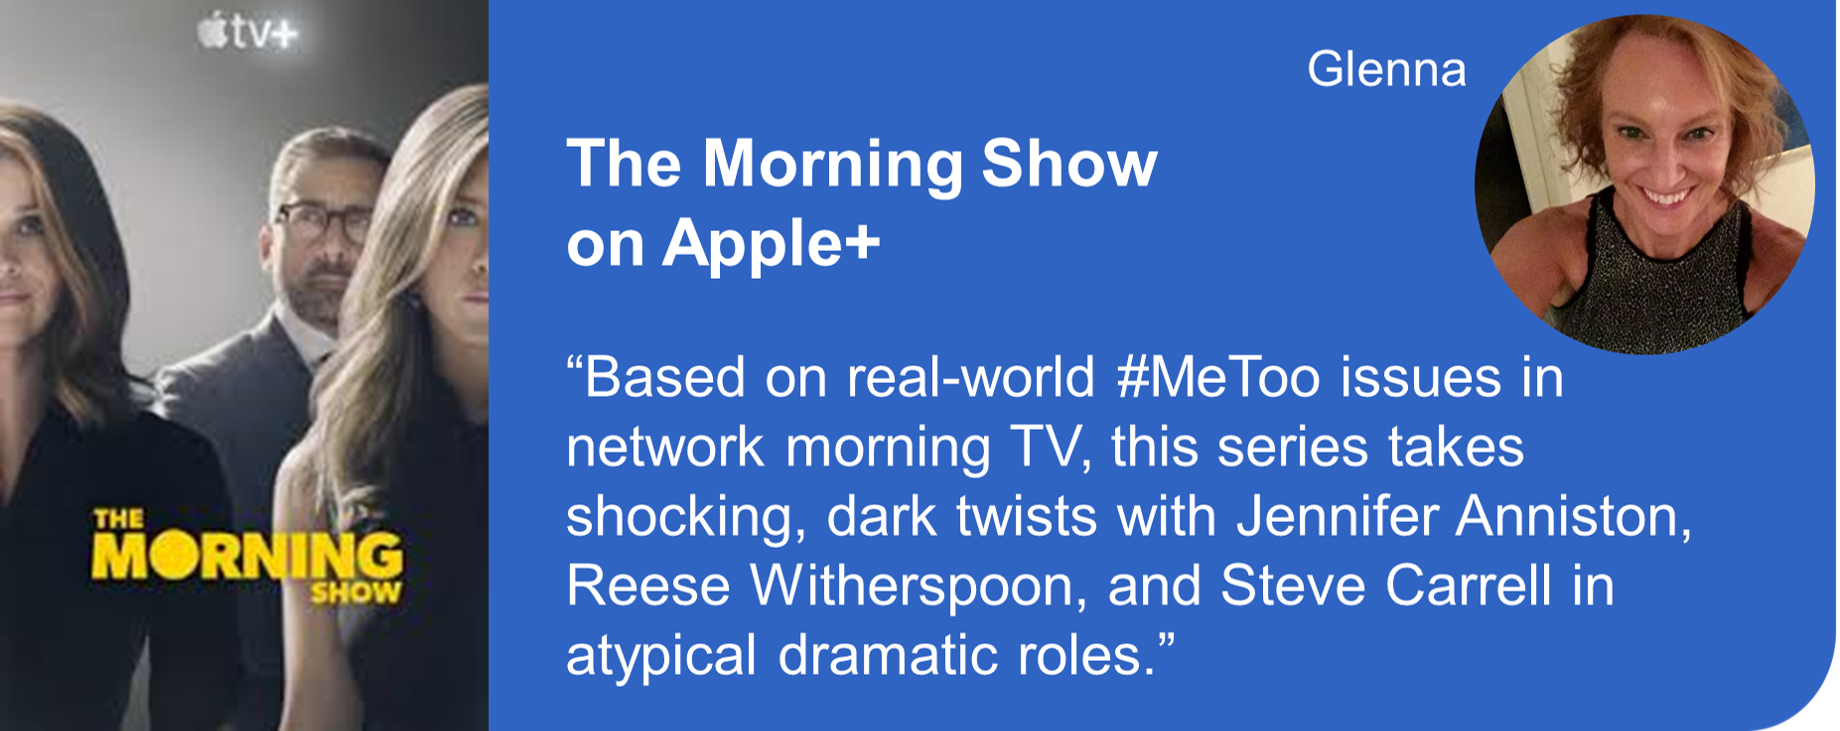 Creative Marketing Concepts Quarantine And Chill Binge-Worthy The Morning Show Apple+